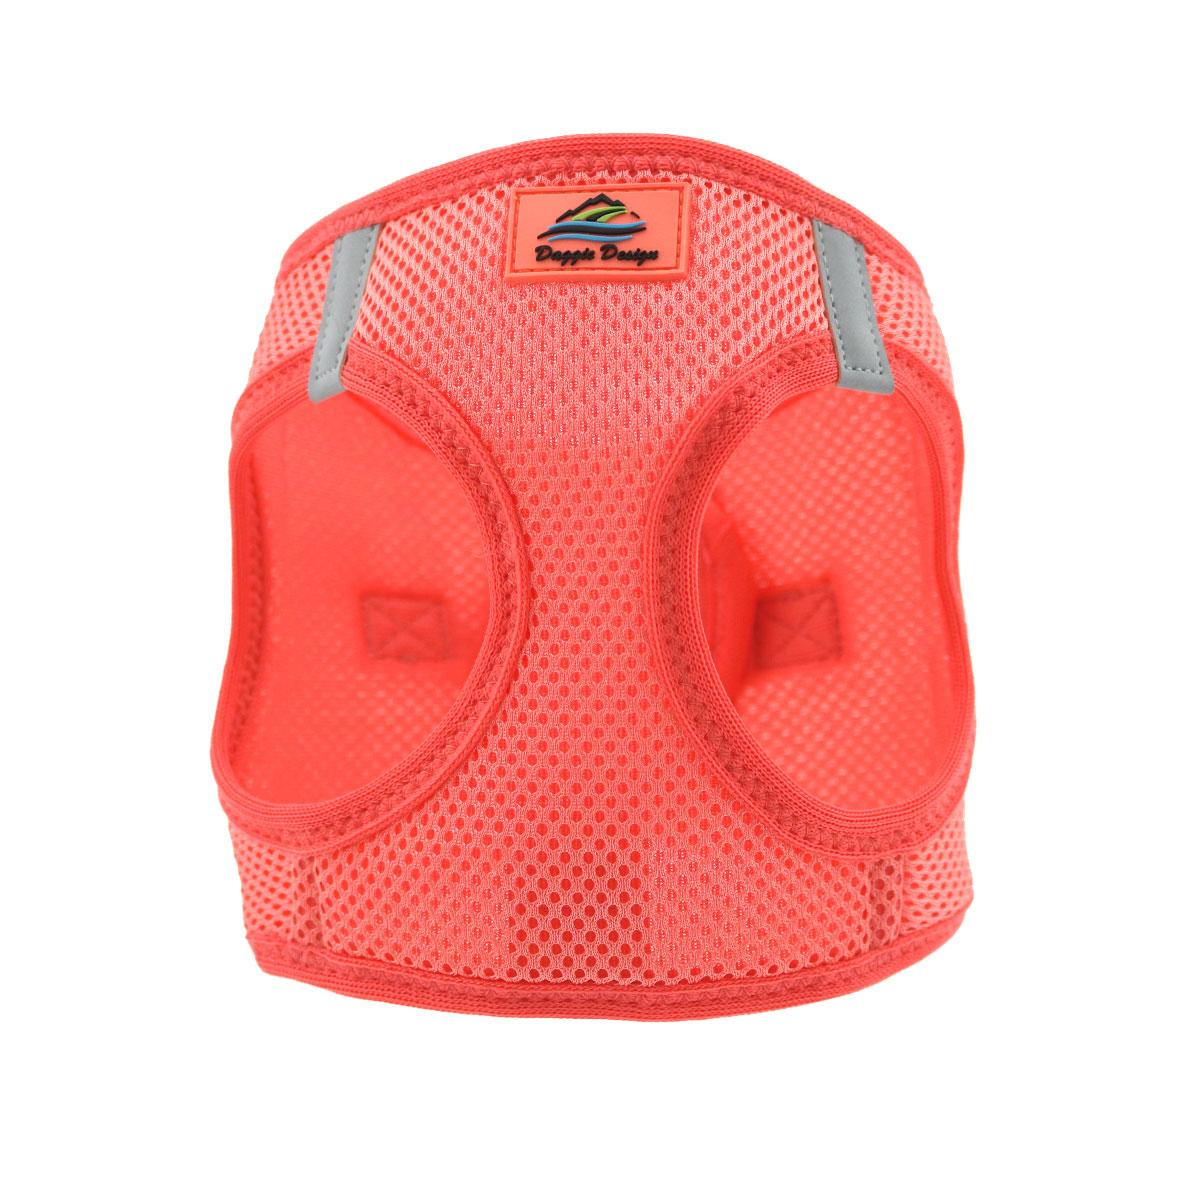 Doggie Design American River Choke-Free Dog Harness Solid, Coral, XX-Large